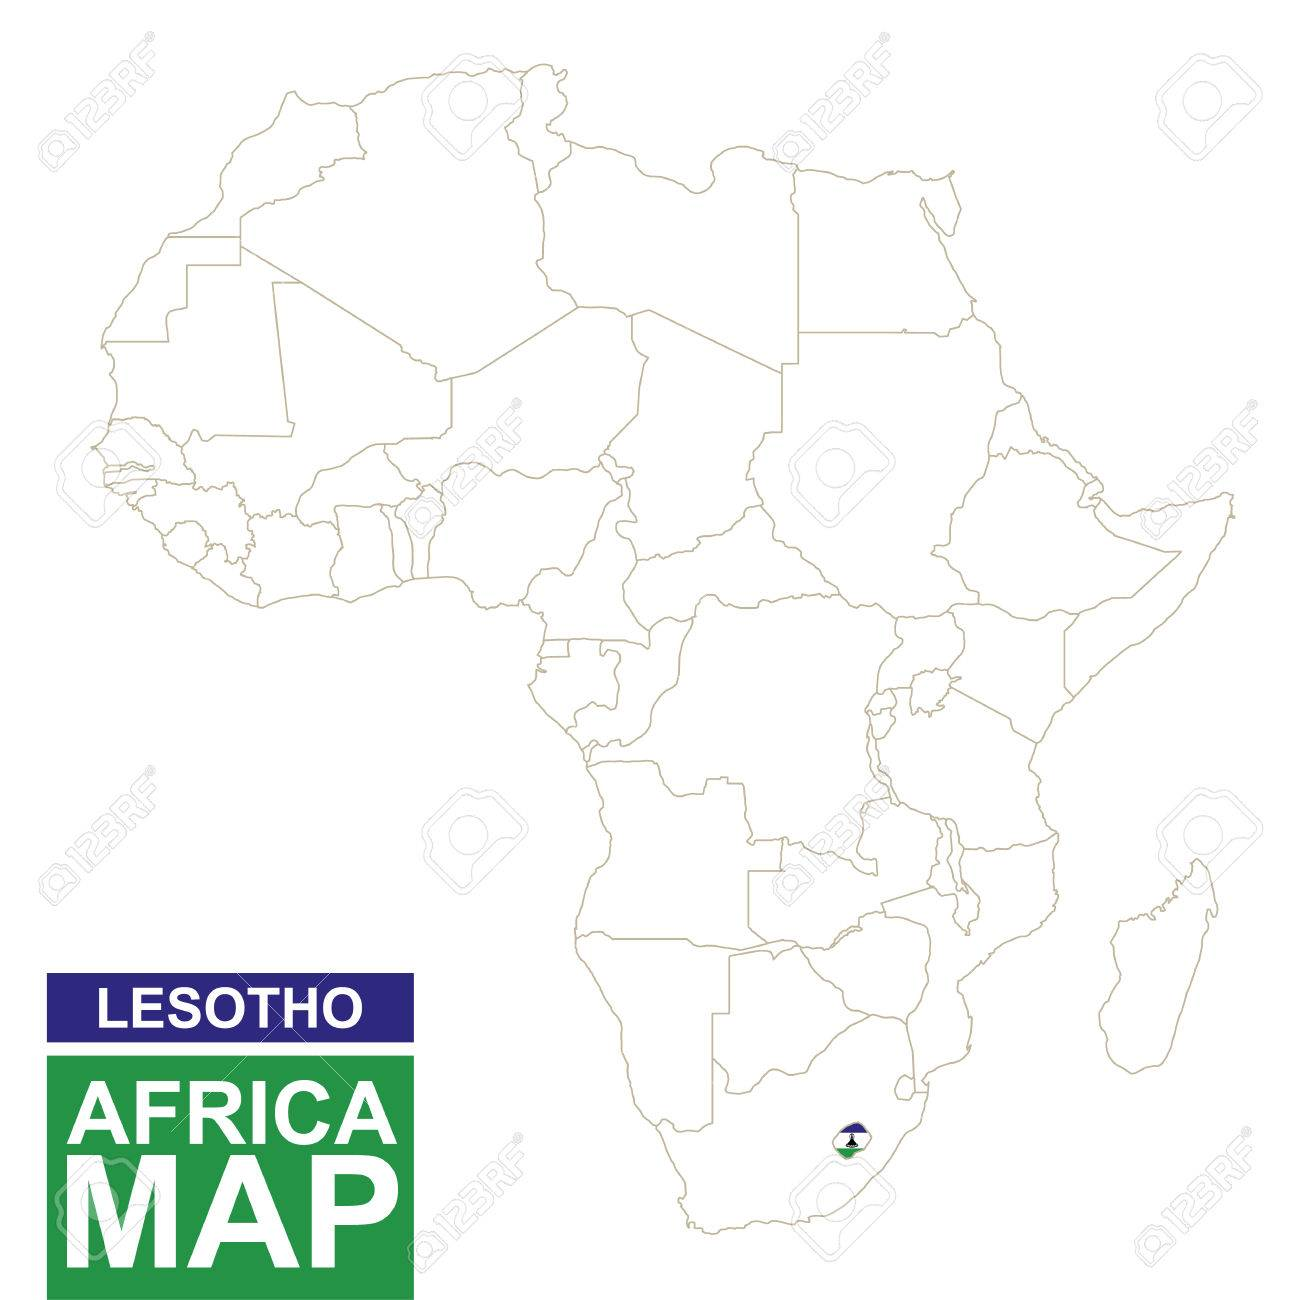 Africa Contoured Map With Highlighted Lesotho Lesotho Map And